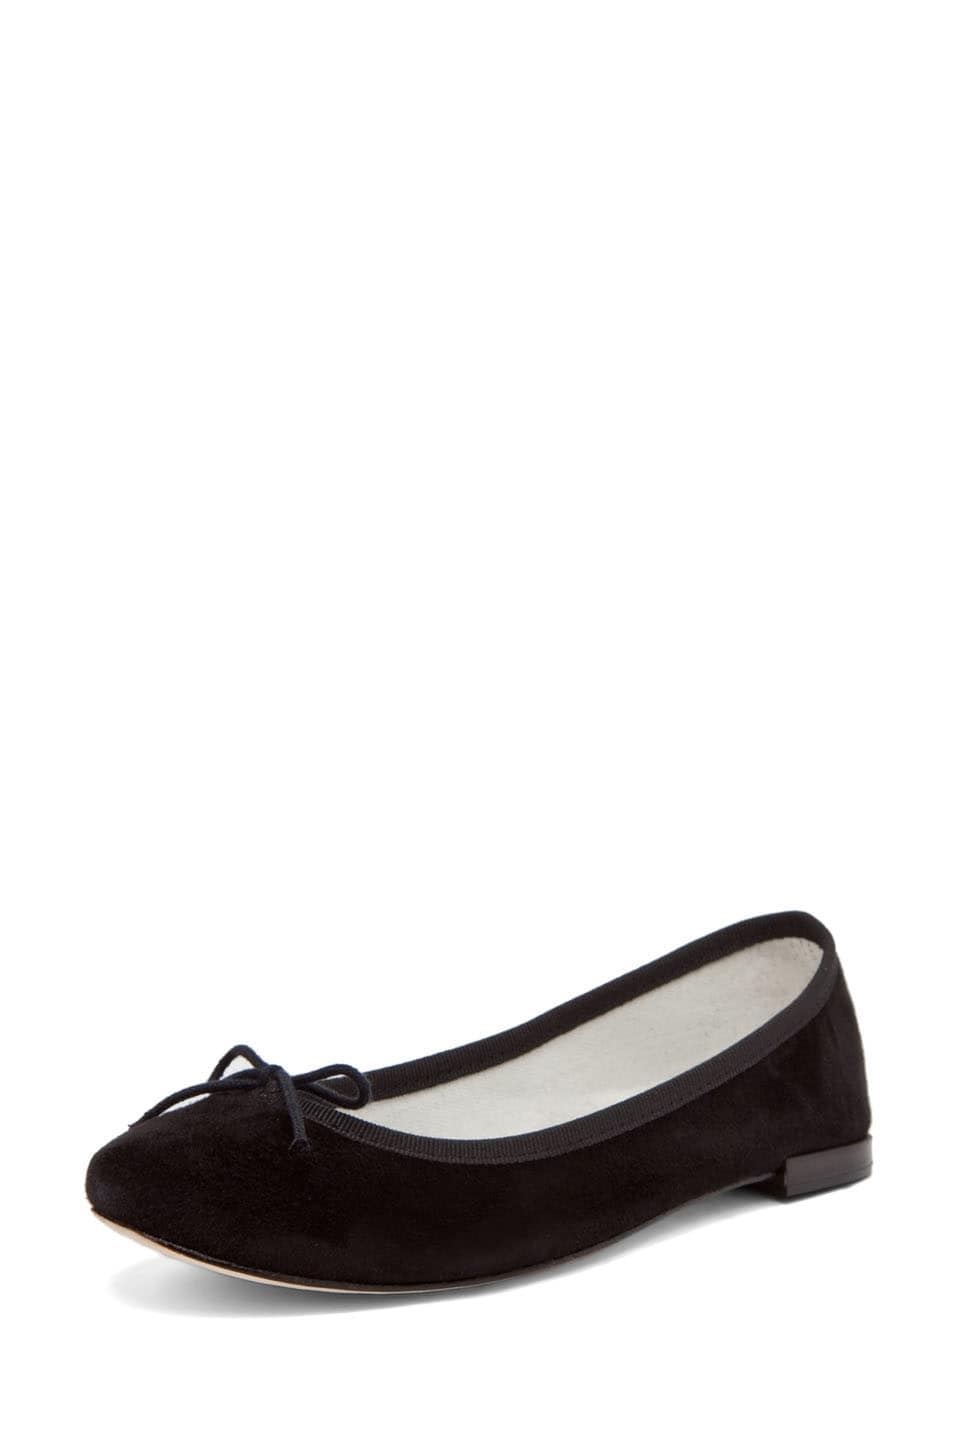 Image 2 of Repetto Suede Flat in Black